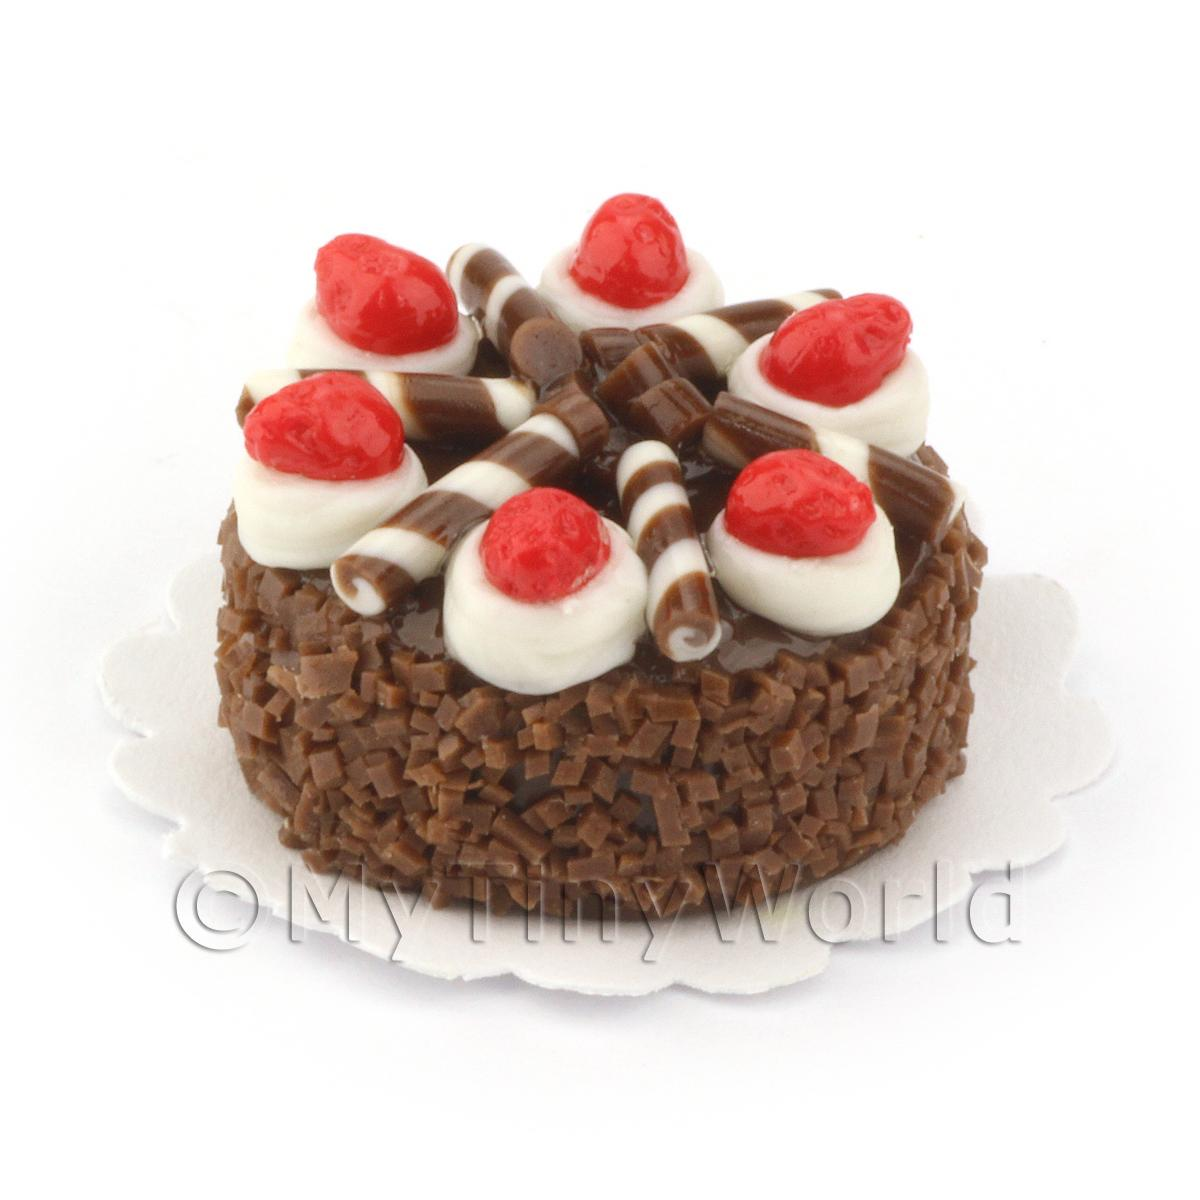 Dolls House Miniature Chocolate Strawberry Cake